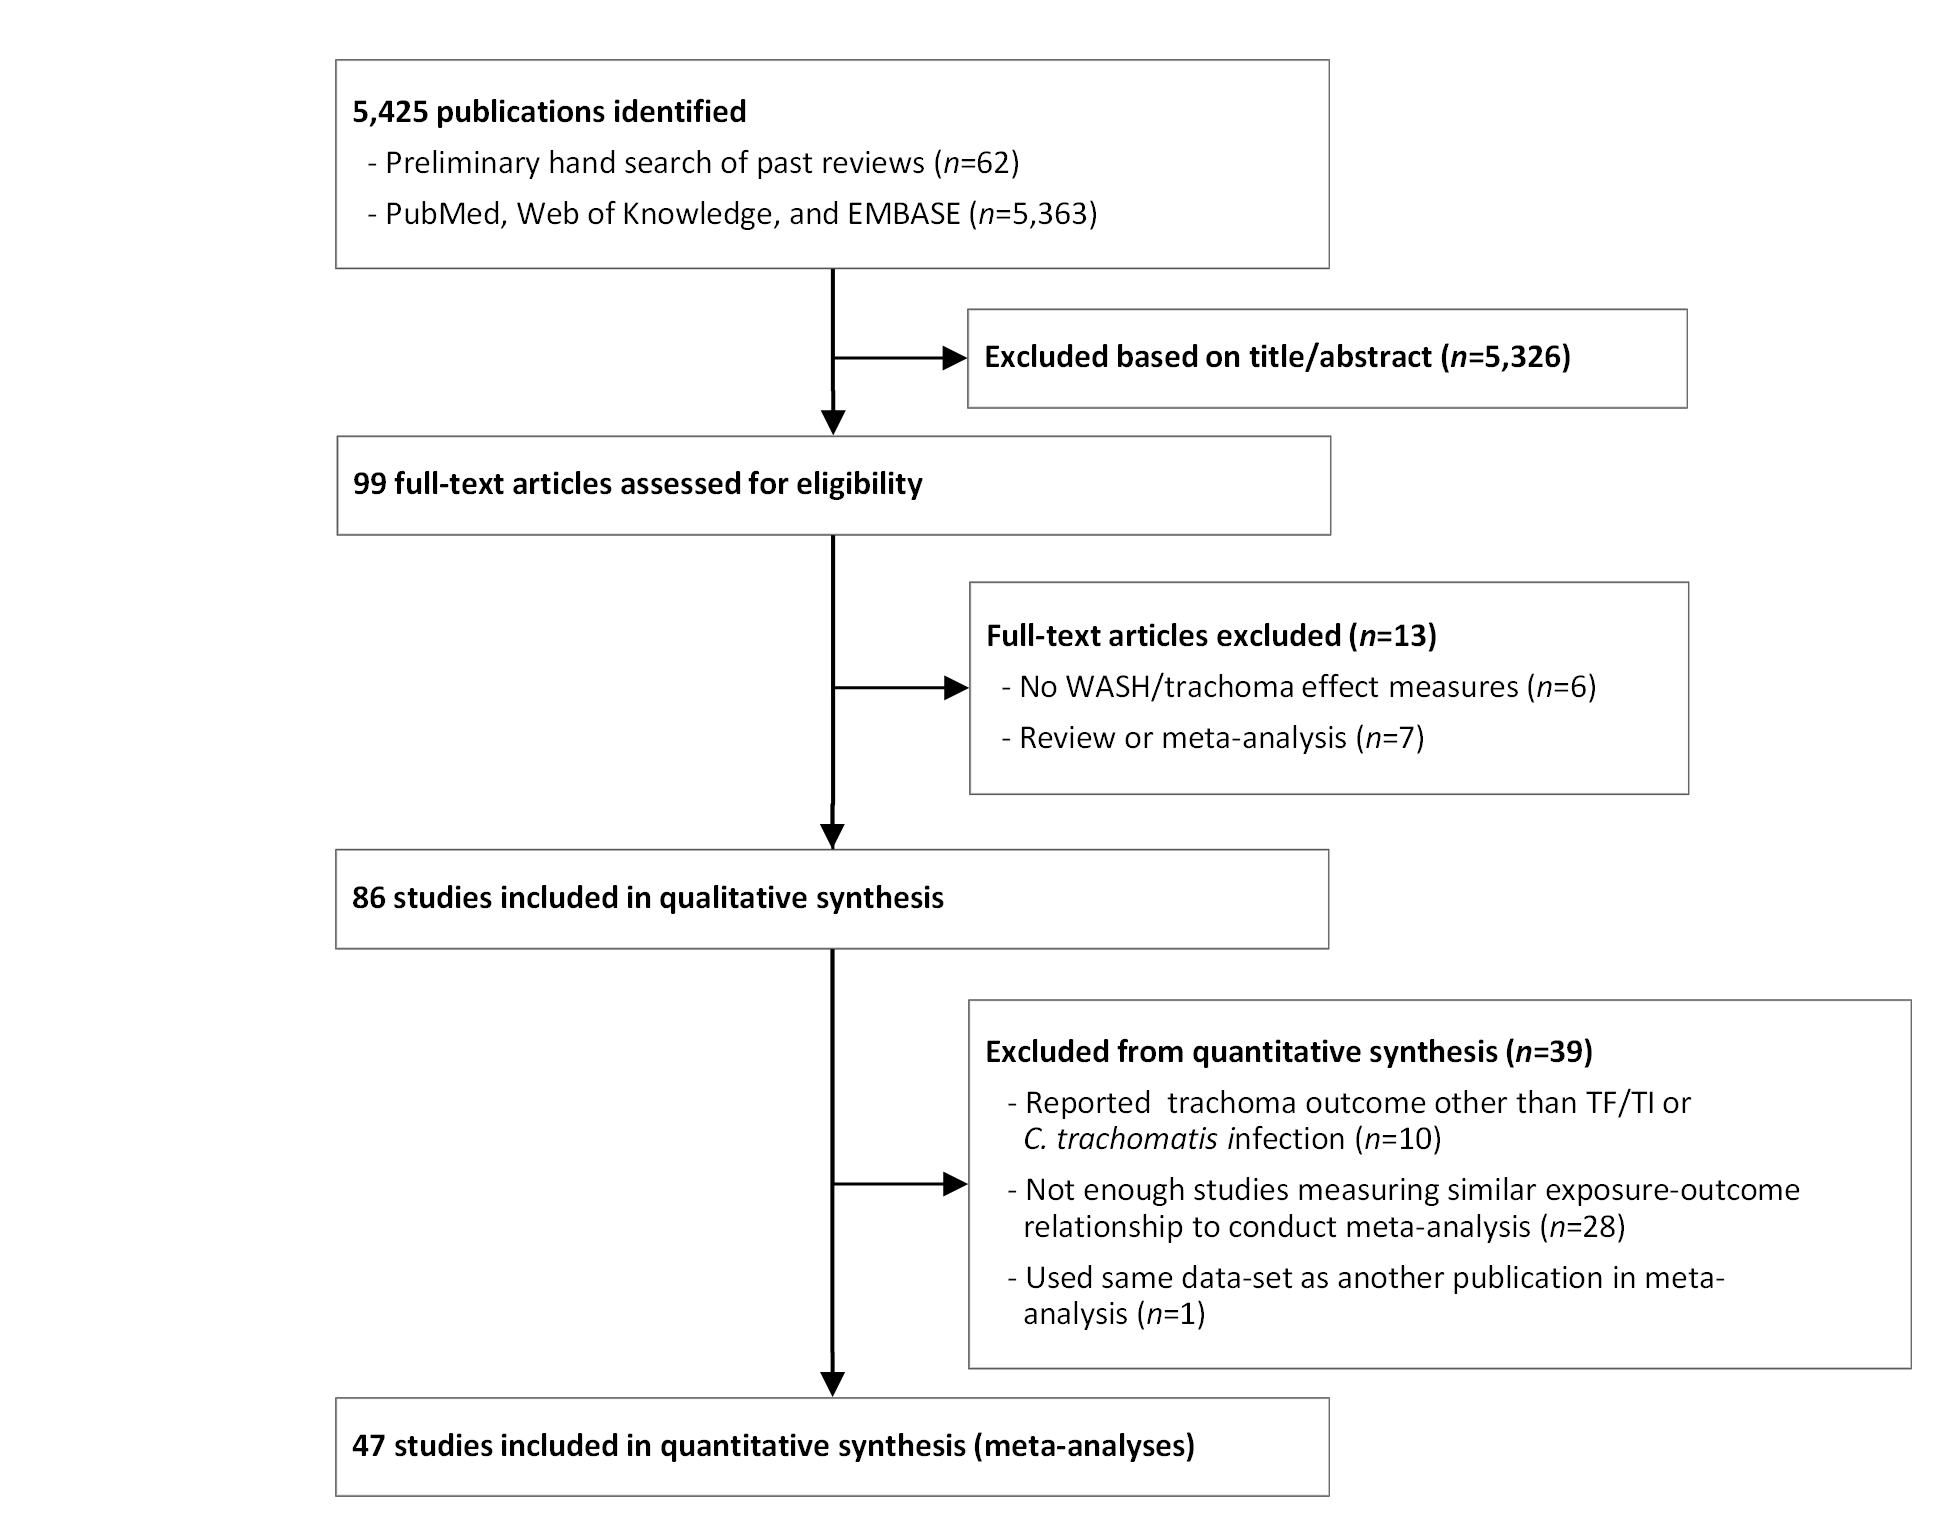 Flow chart of publications identified and excluded for this review.